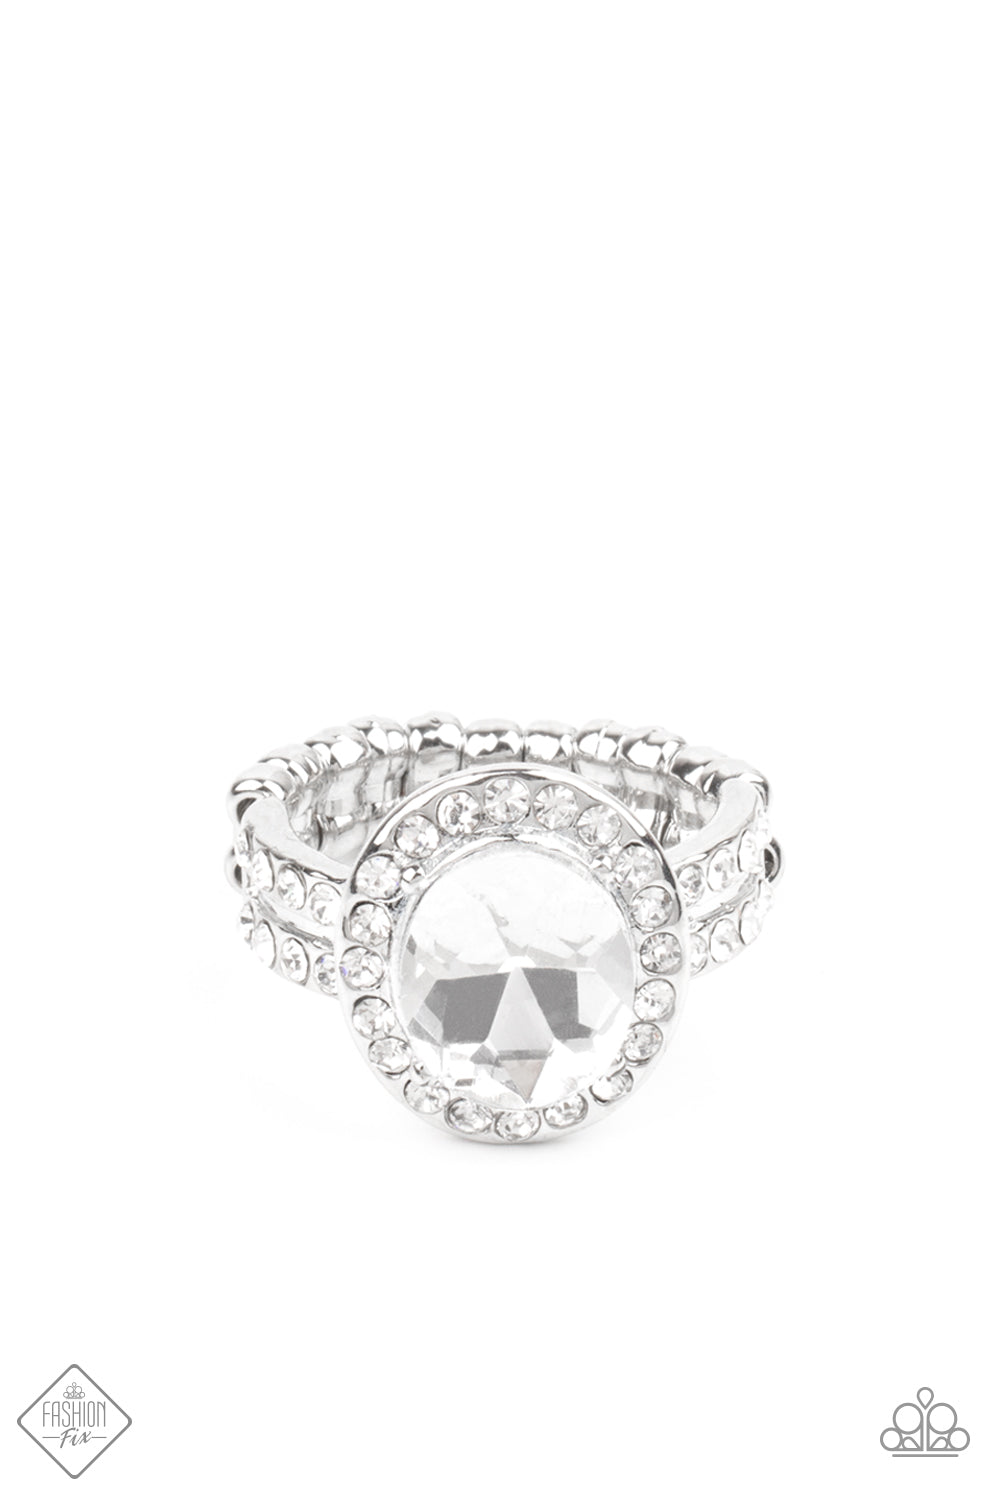 Paparazzi Accessories - Unstoppable Sparkle - White Ring